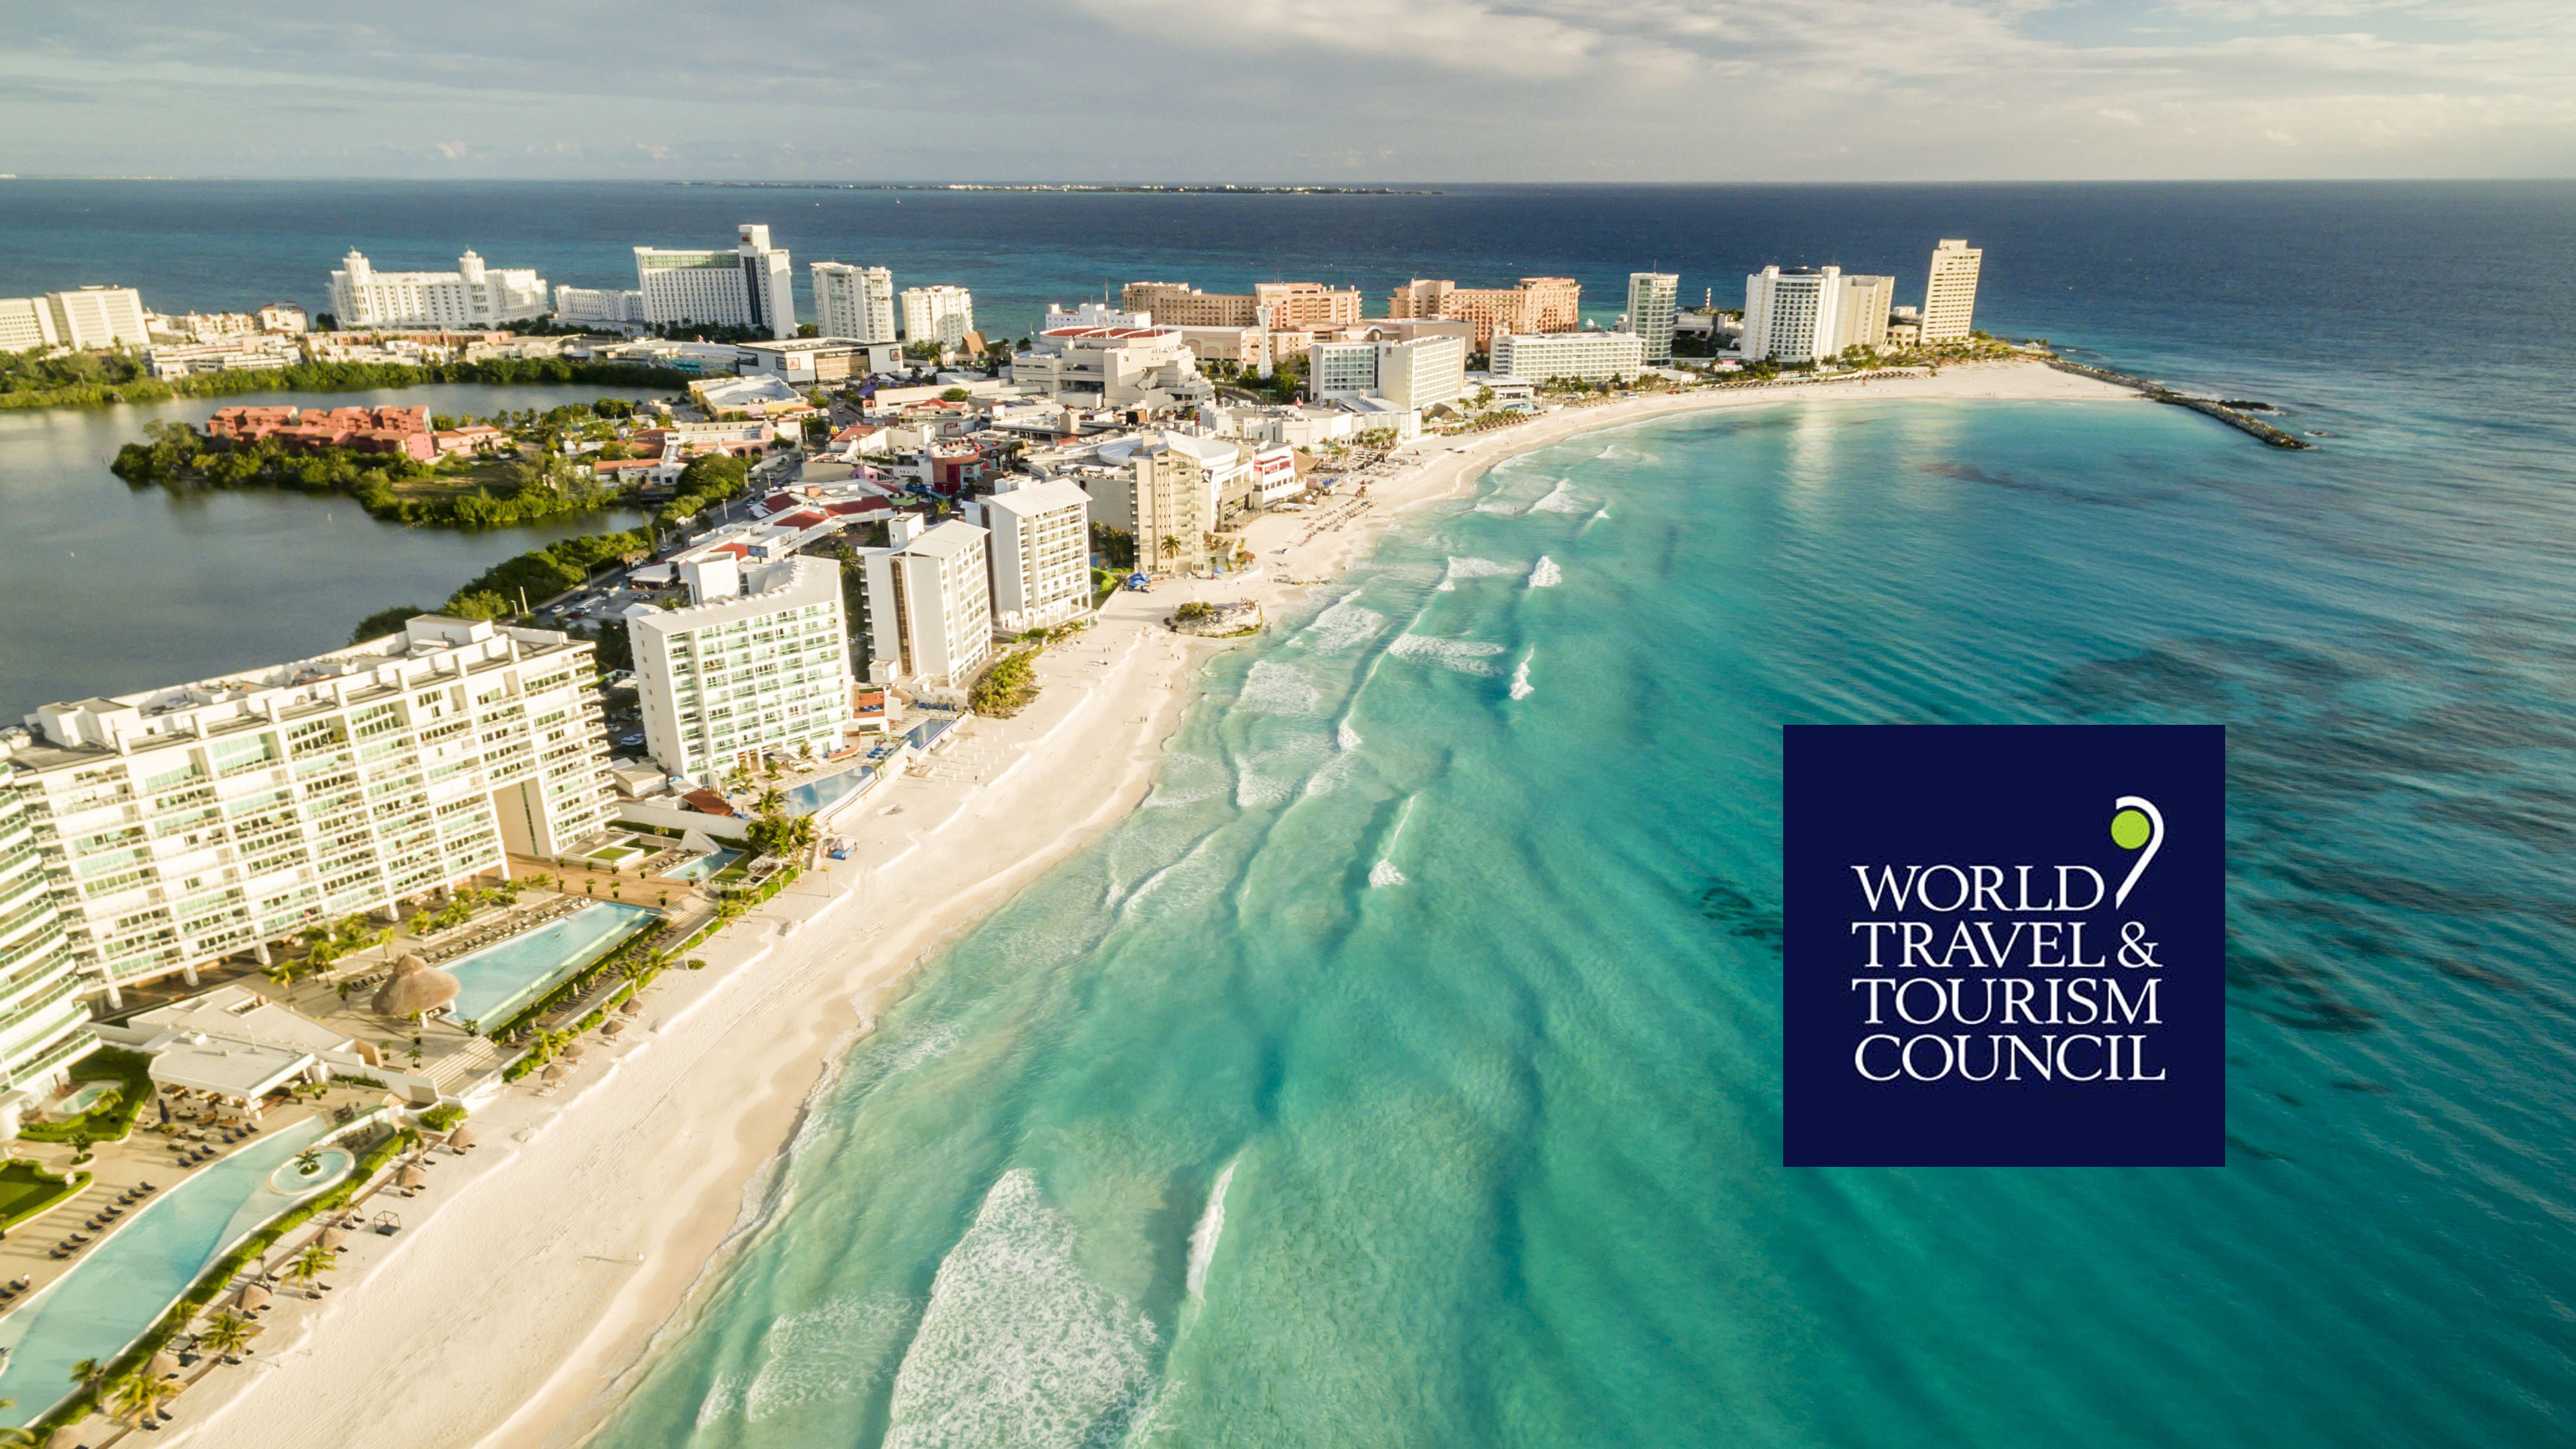 Cancun and WTTC logo